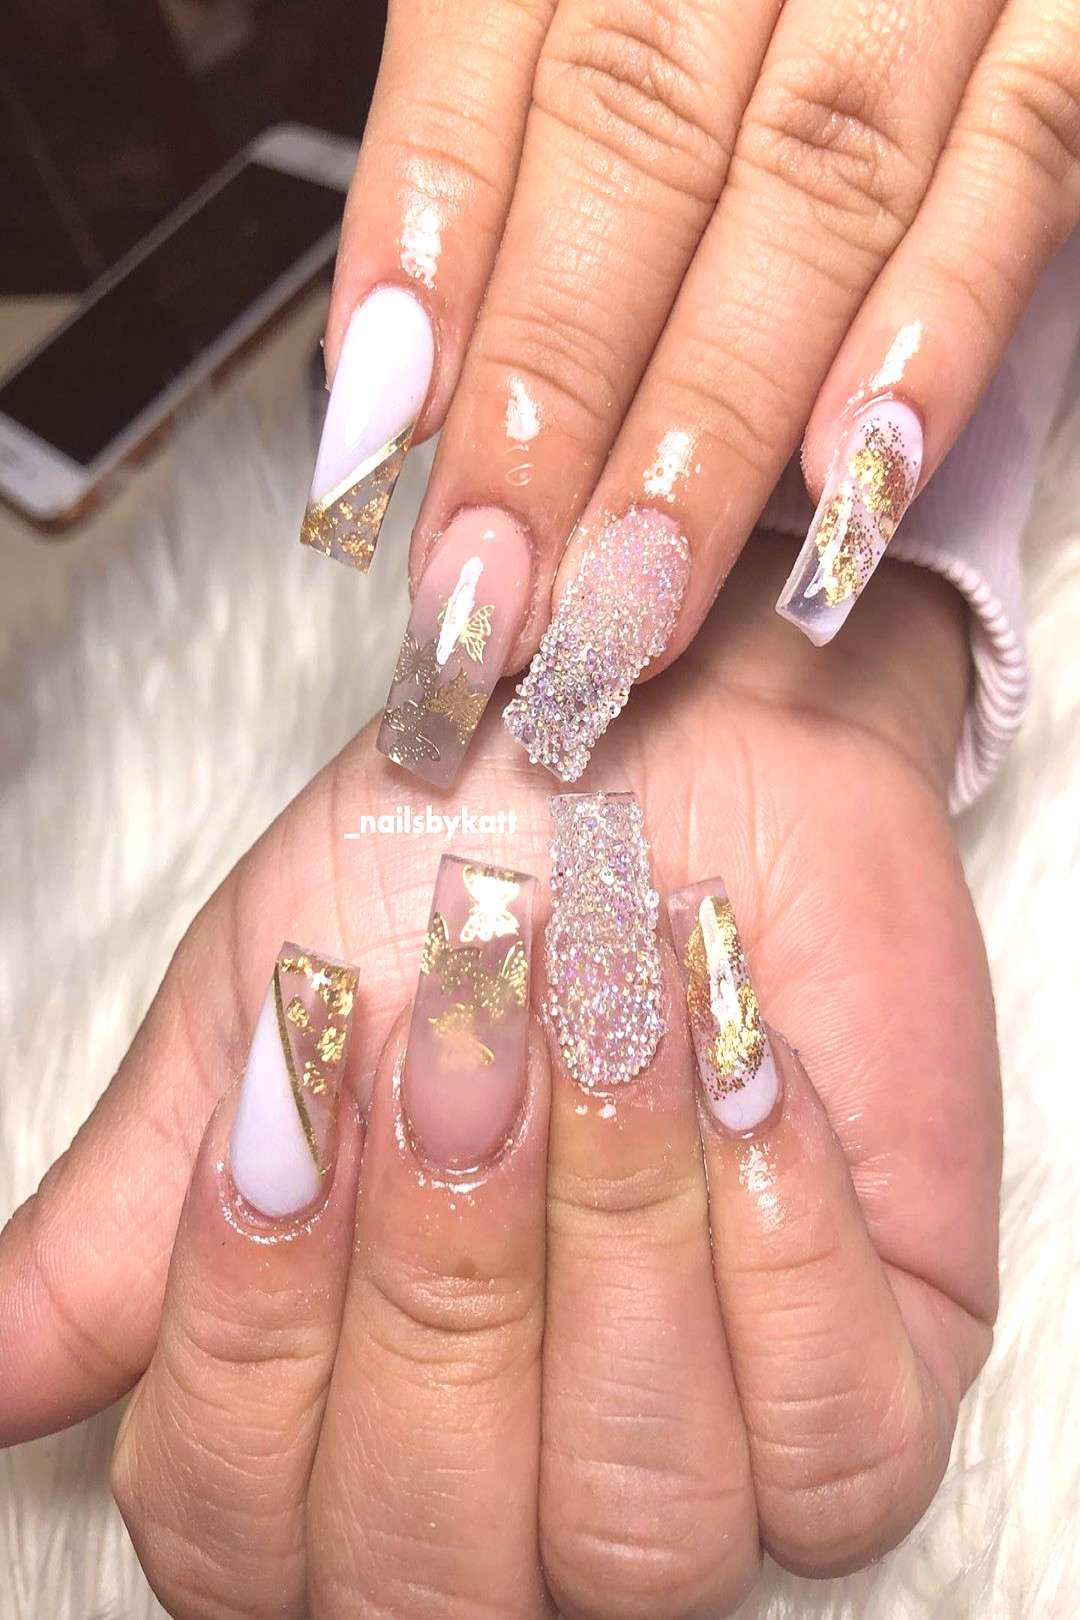 #acrylicnails #butterflies #coffinnai #nelfies #closeup #people #these #love #gold #more #one #and #or Love these Gold butterflies * * #acrylicnails #nelfies #coffinnaiYou can find Nail tutorials and more on ...